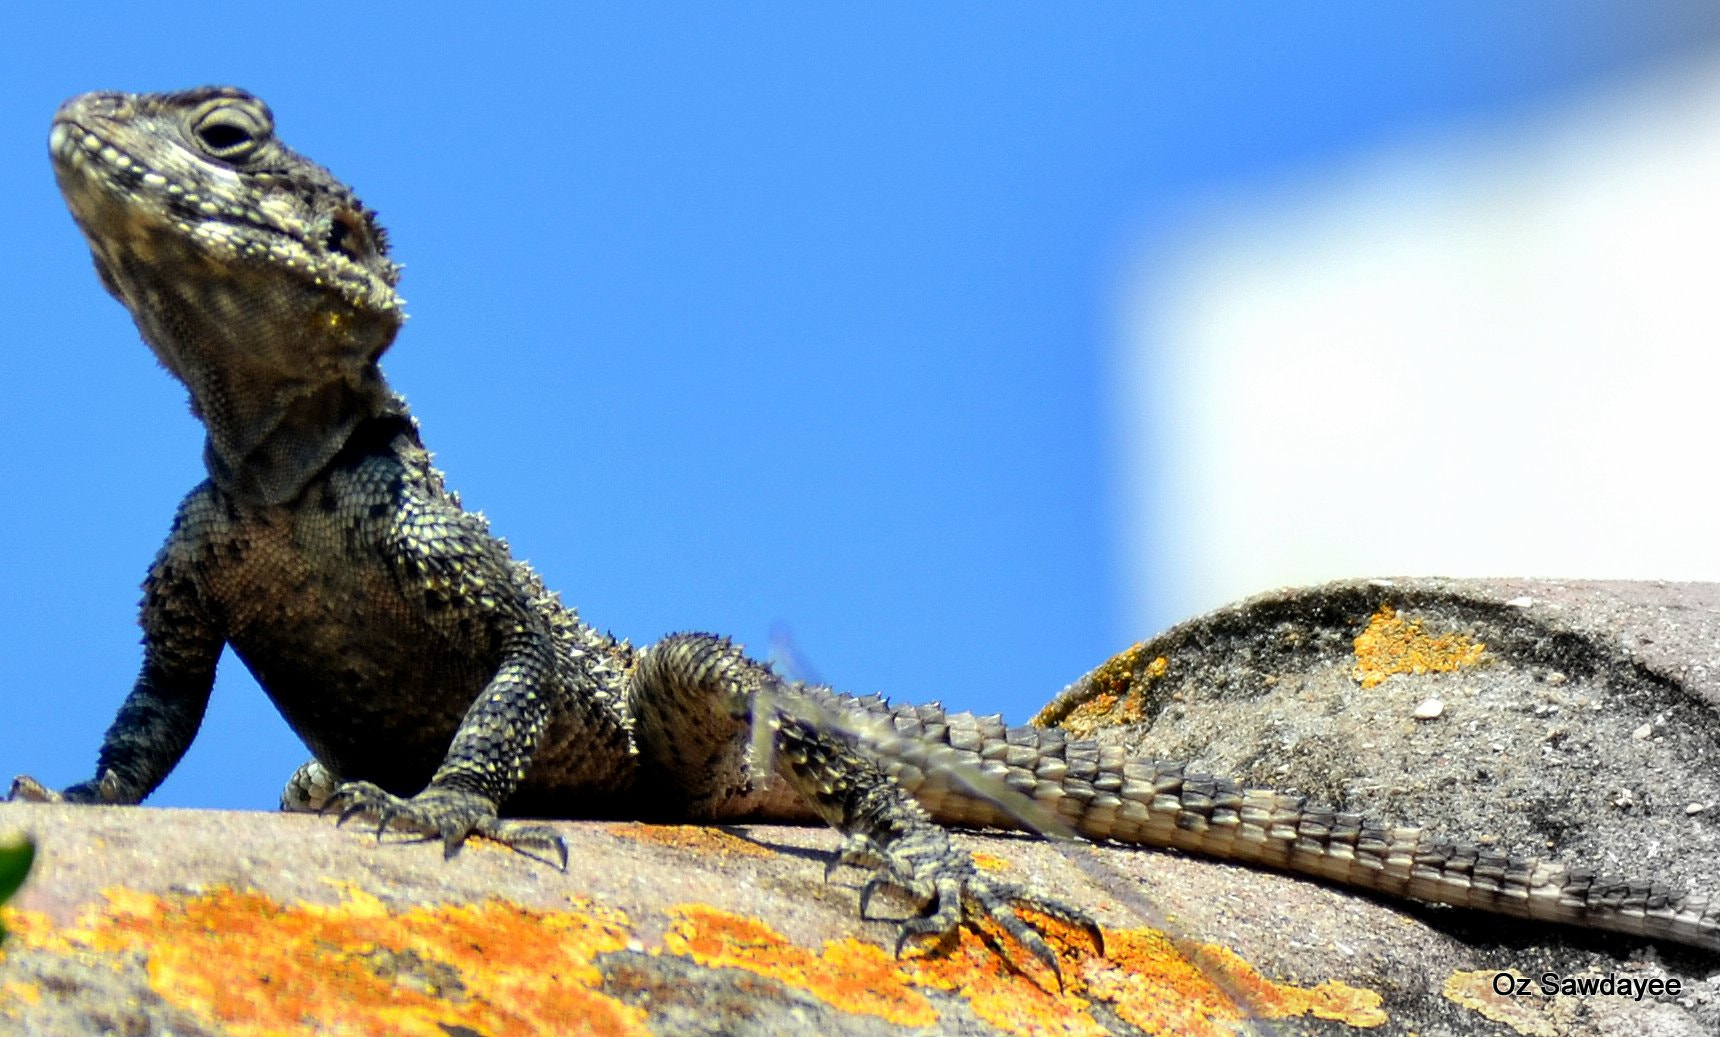 Photograph The King of the roof by Oz Sawdayee on 500px